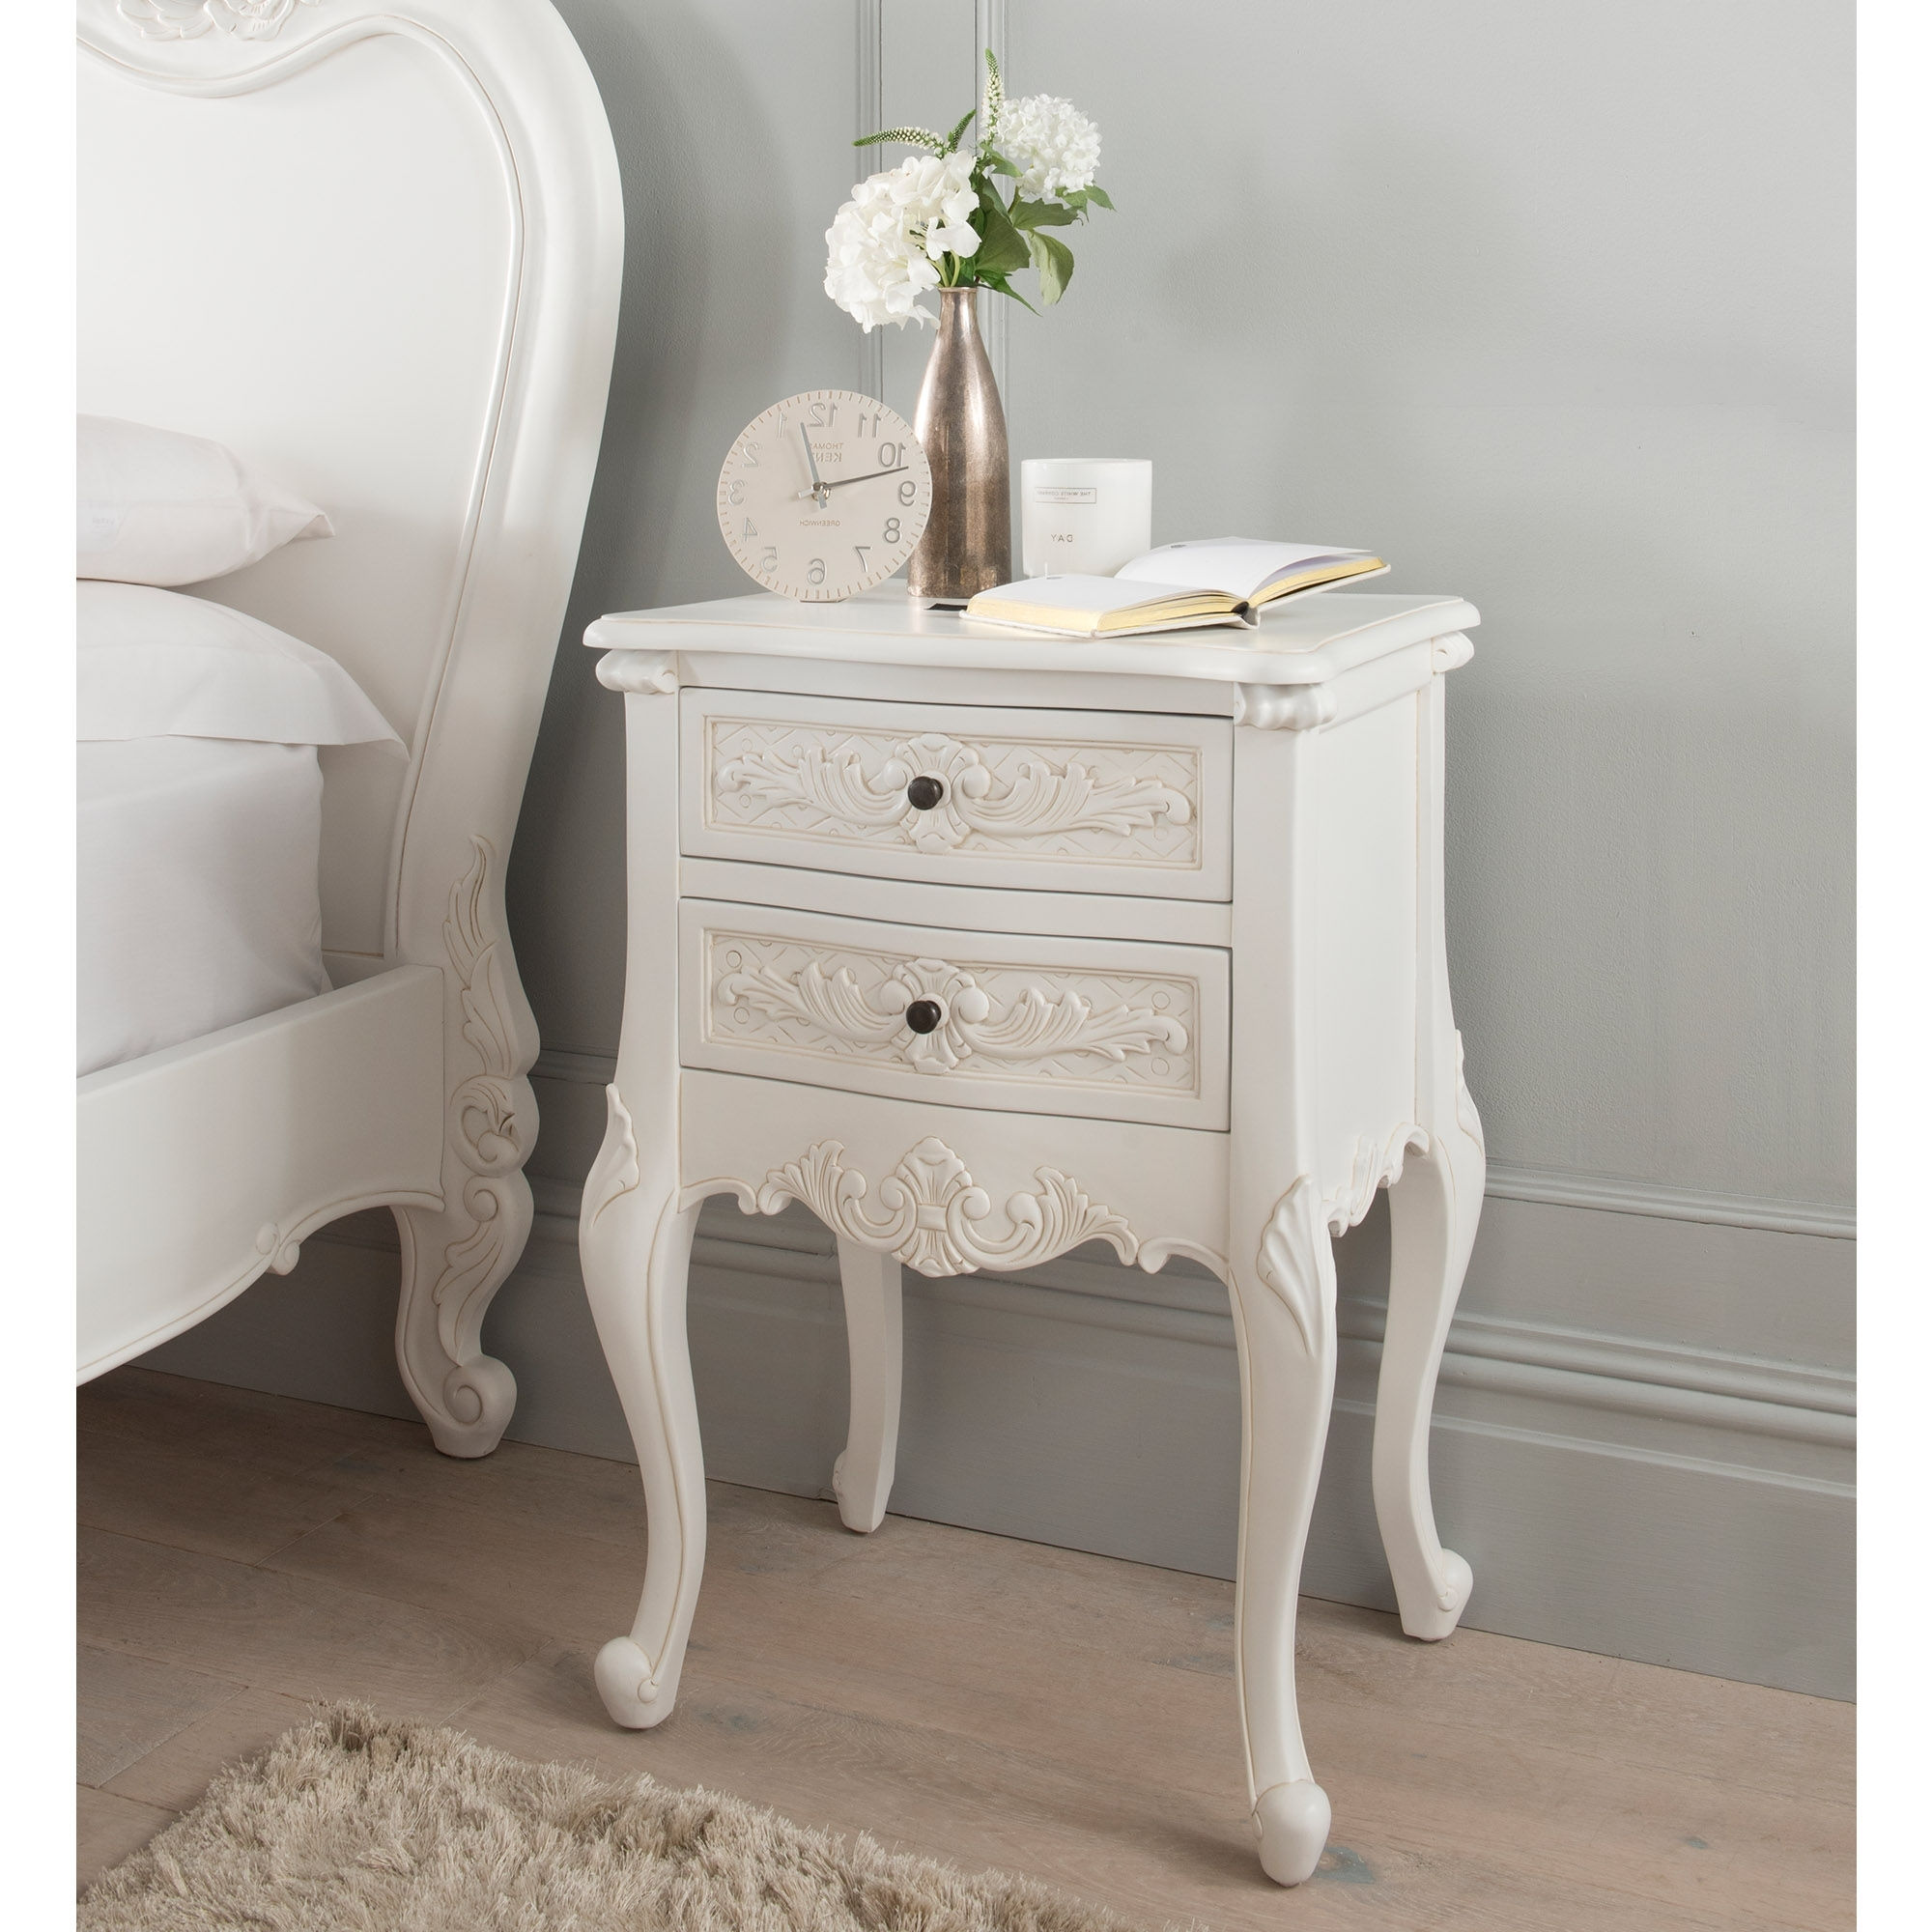 Antique French Style Bedside Table Shabby Chic Bedroom